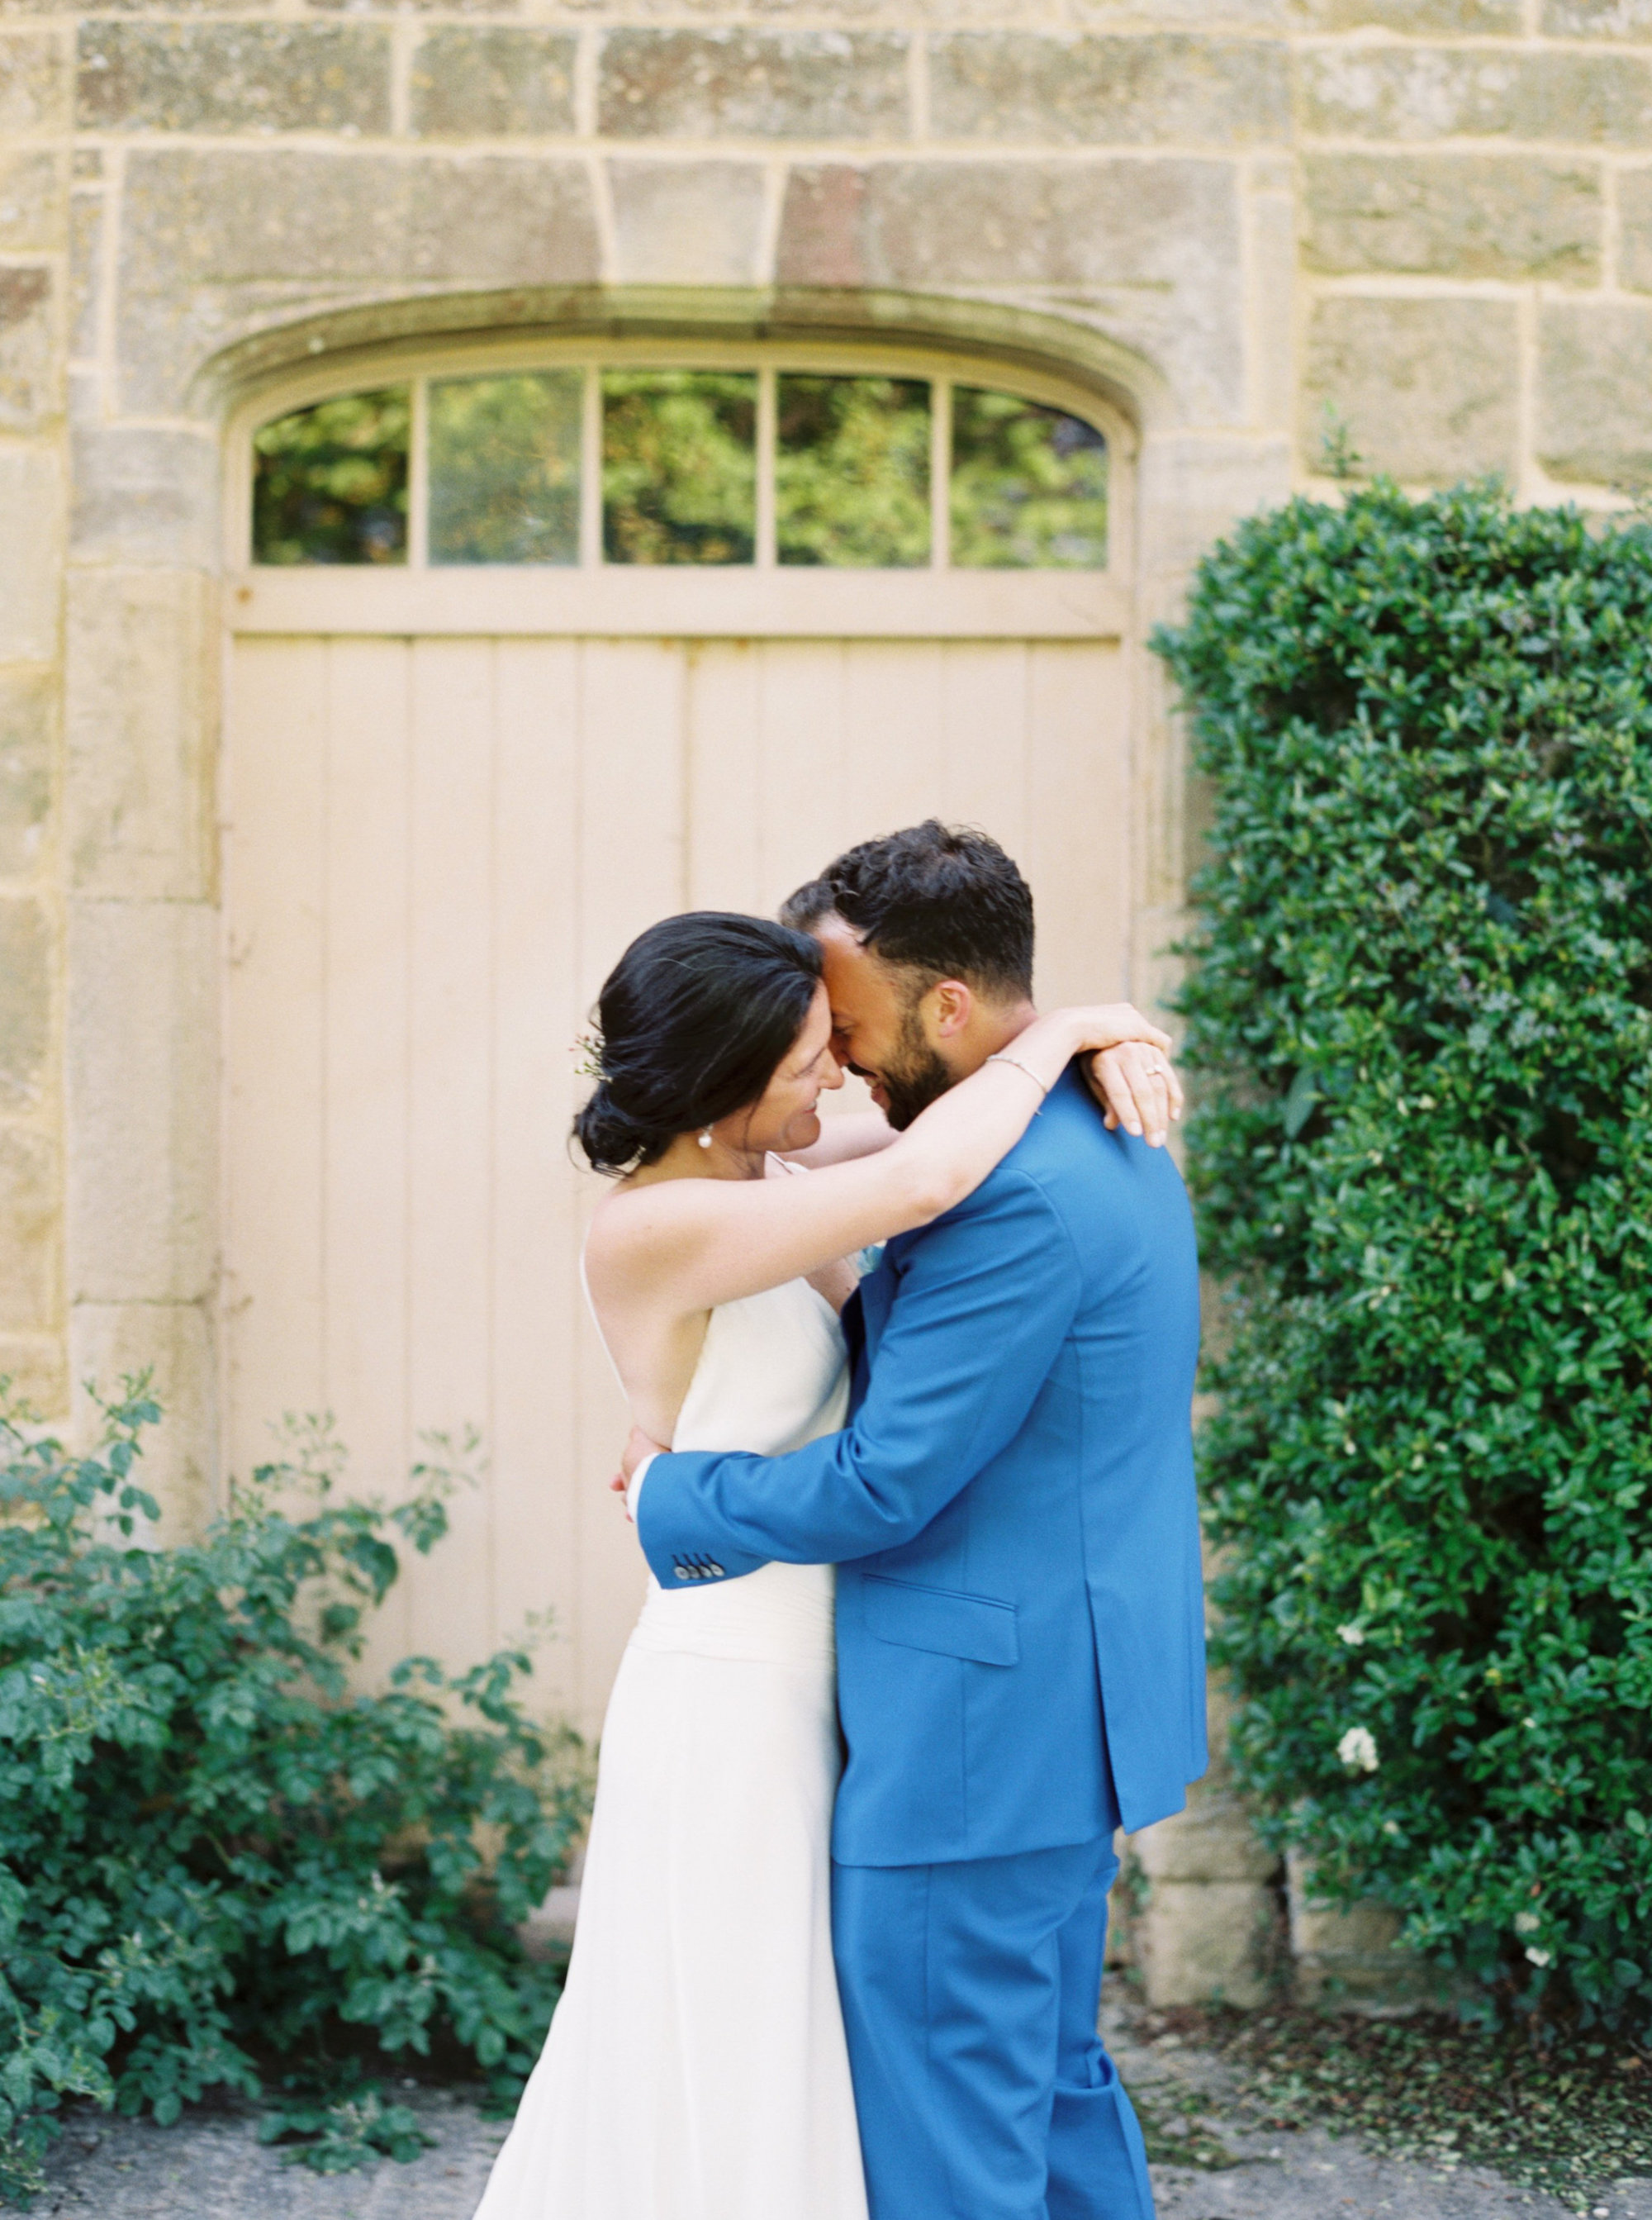 Luxury Wedding Planner UK | Jennifer & Timothy's English Country Manor Wedding | Soft Pink Pale Blue White and Silver Toned Green Neutral Tones American Bride North Cadbury Court | Nicole Colwell Photography  0010.jpg